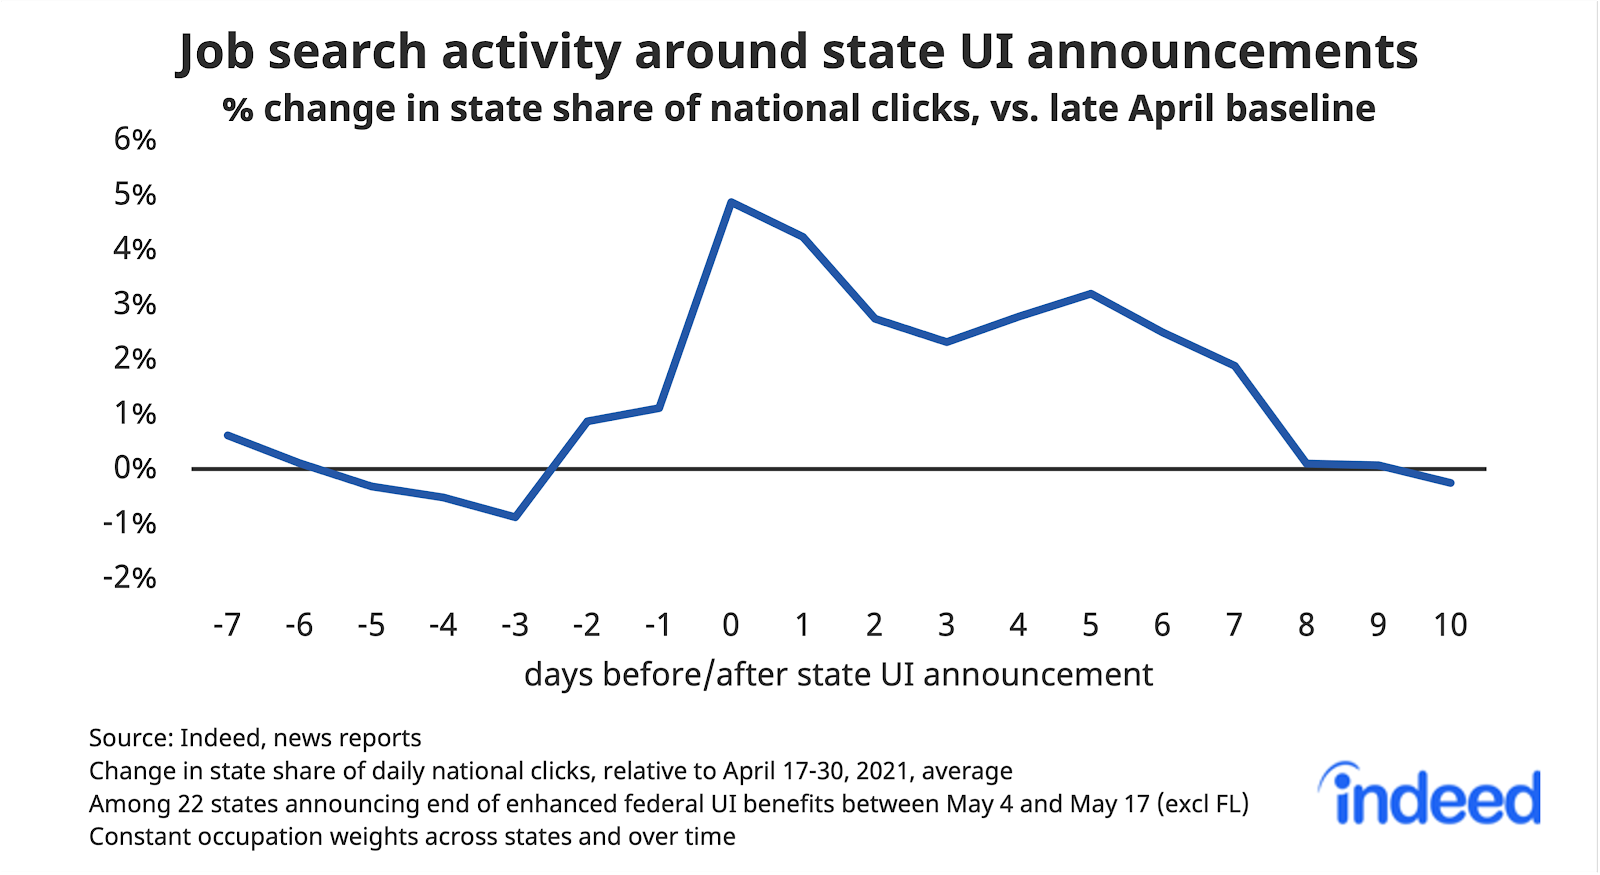 Line graph showing job search activity around state UI announcements